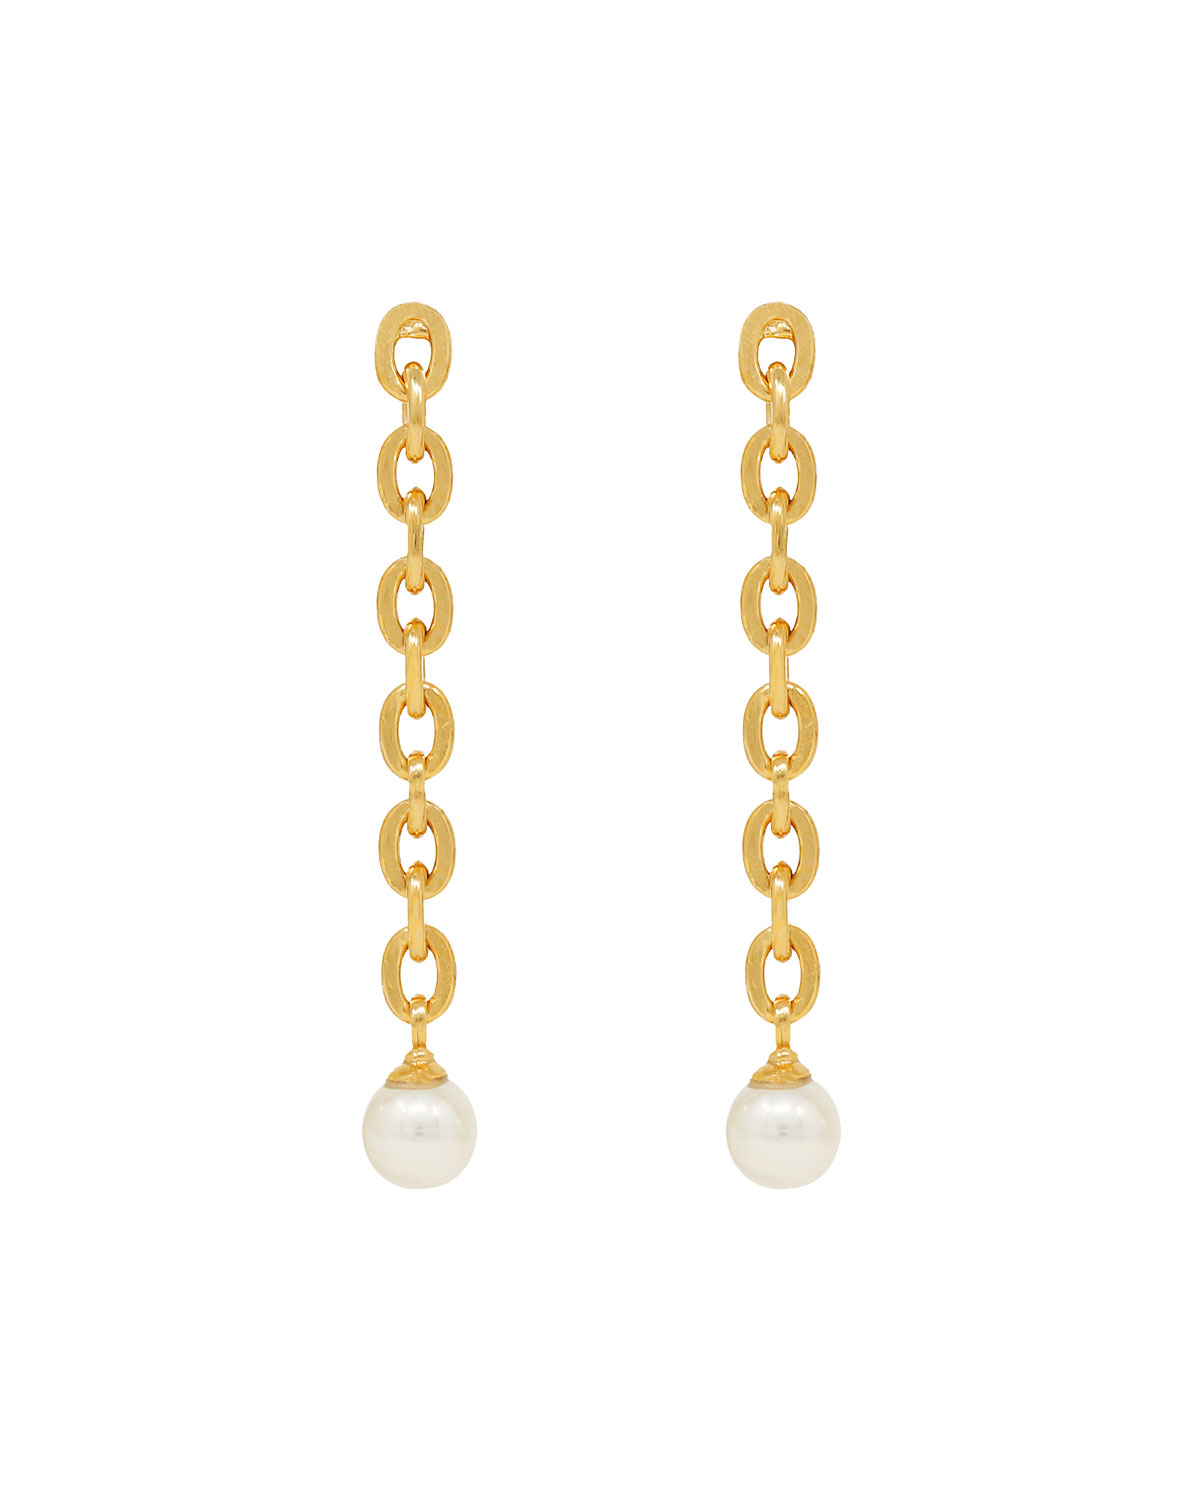 Pearly Chain-Link Earrings